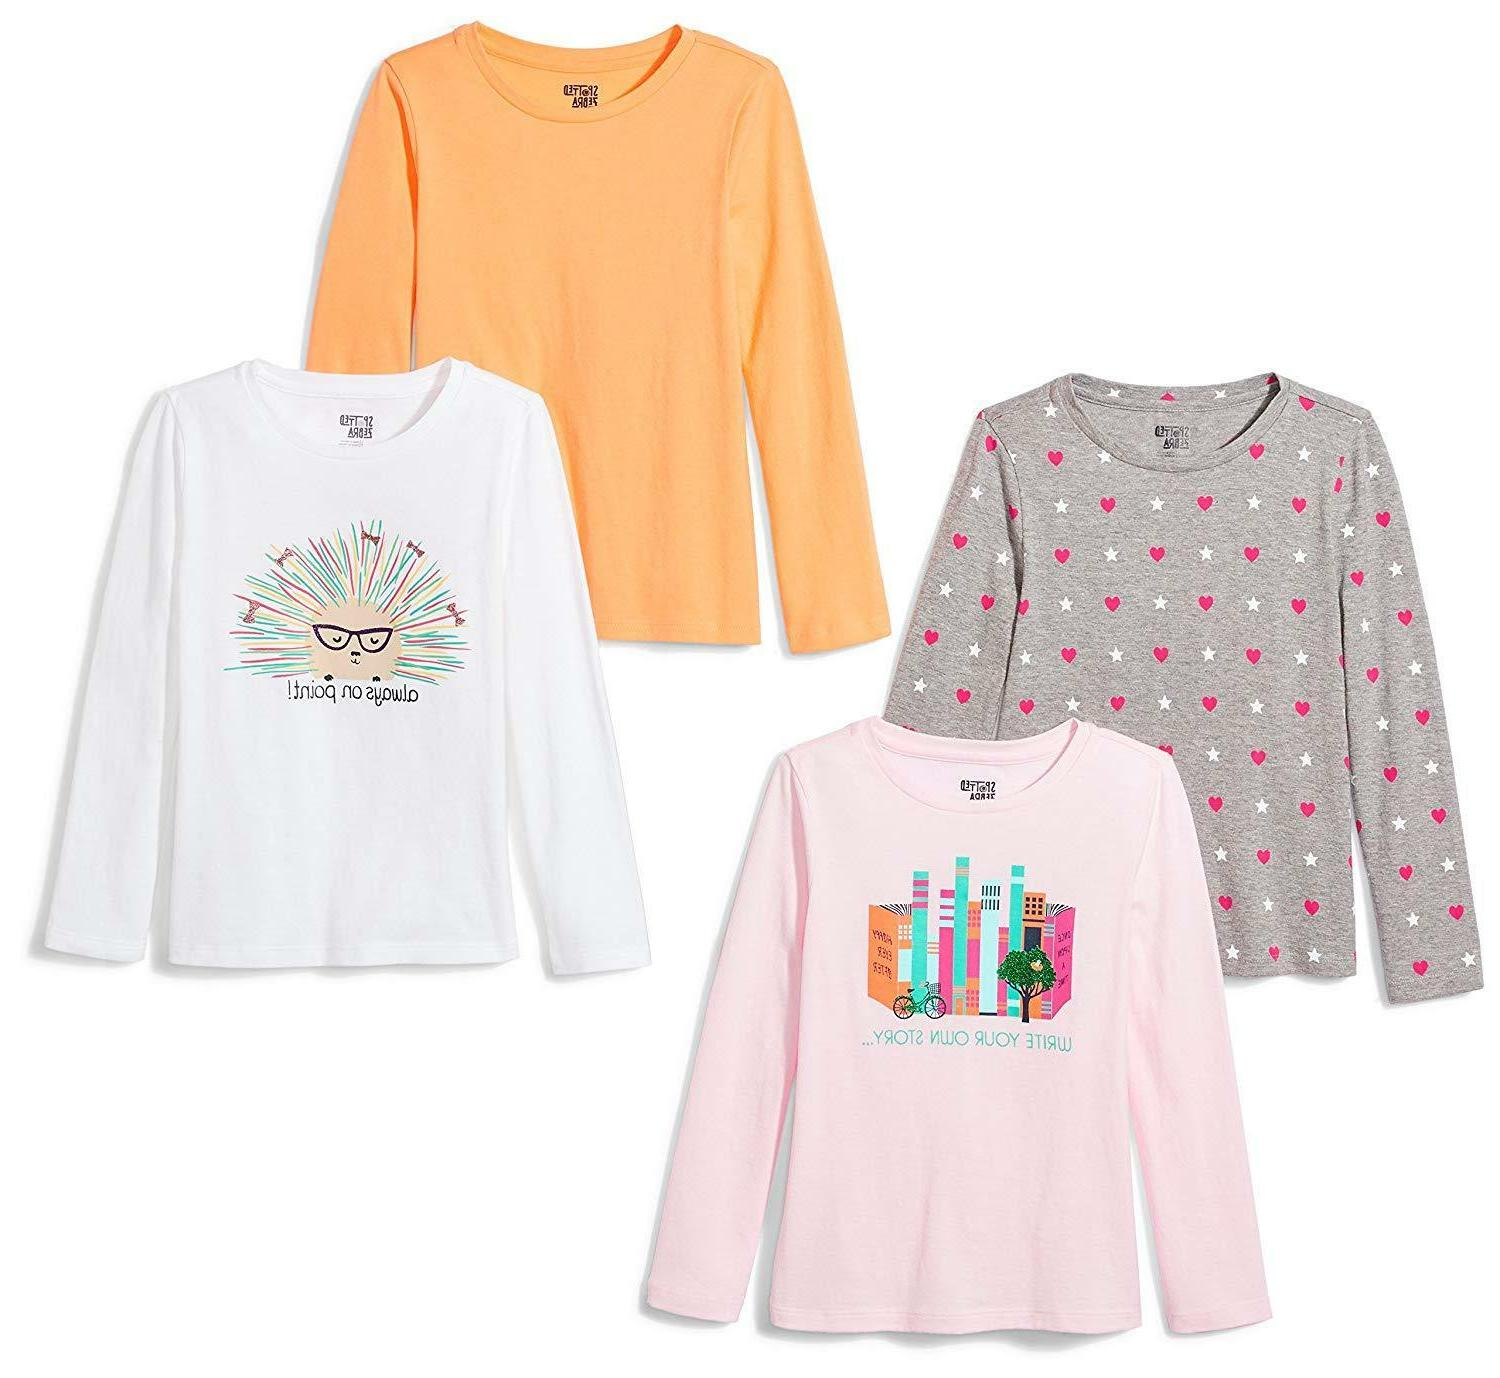 Spotted Zebra Girls' Long-Sleeve T-Shirts